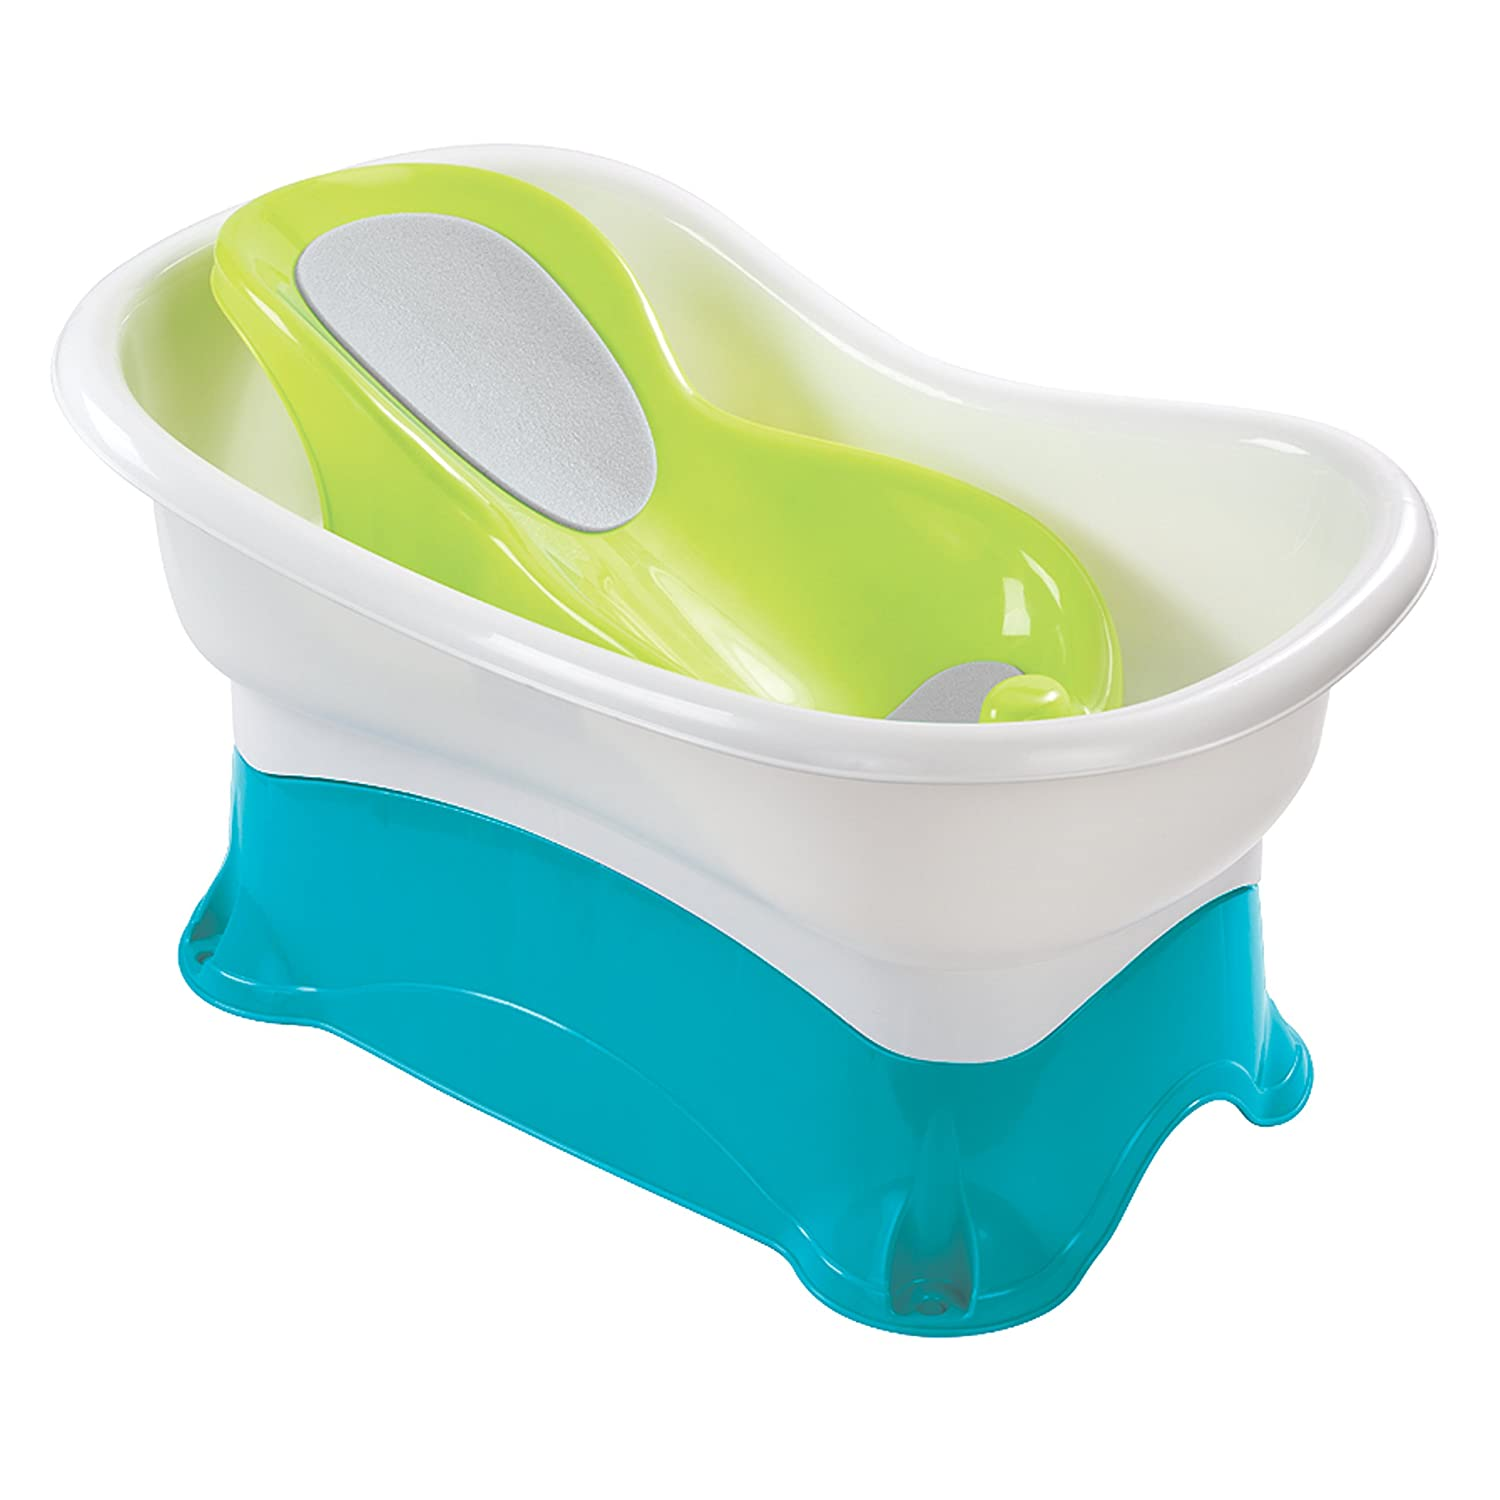 Baby bath chair walmart - Summer Infant Comfort Height Bath Tub